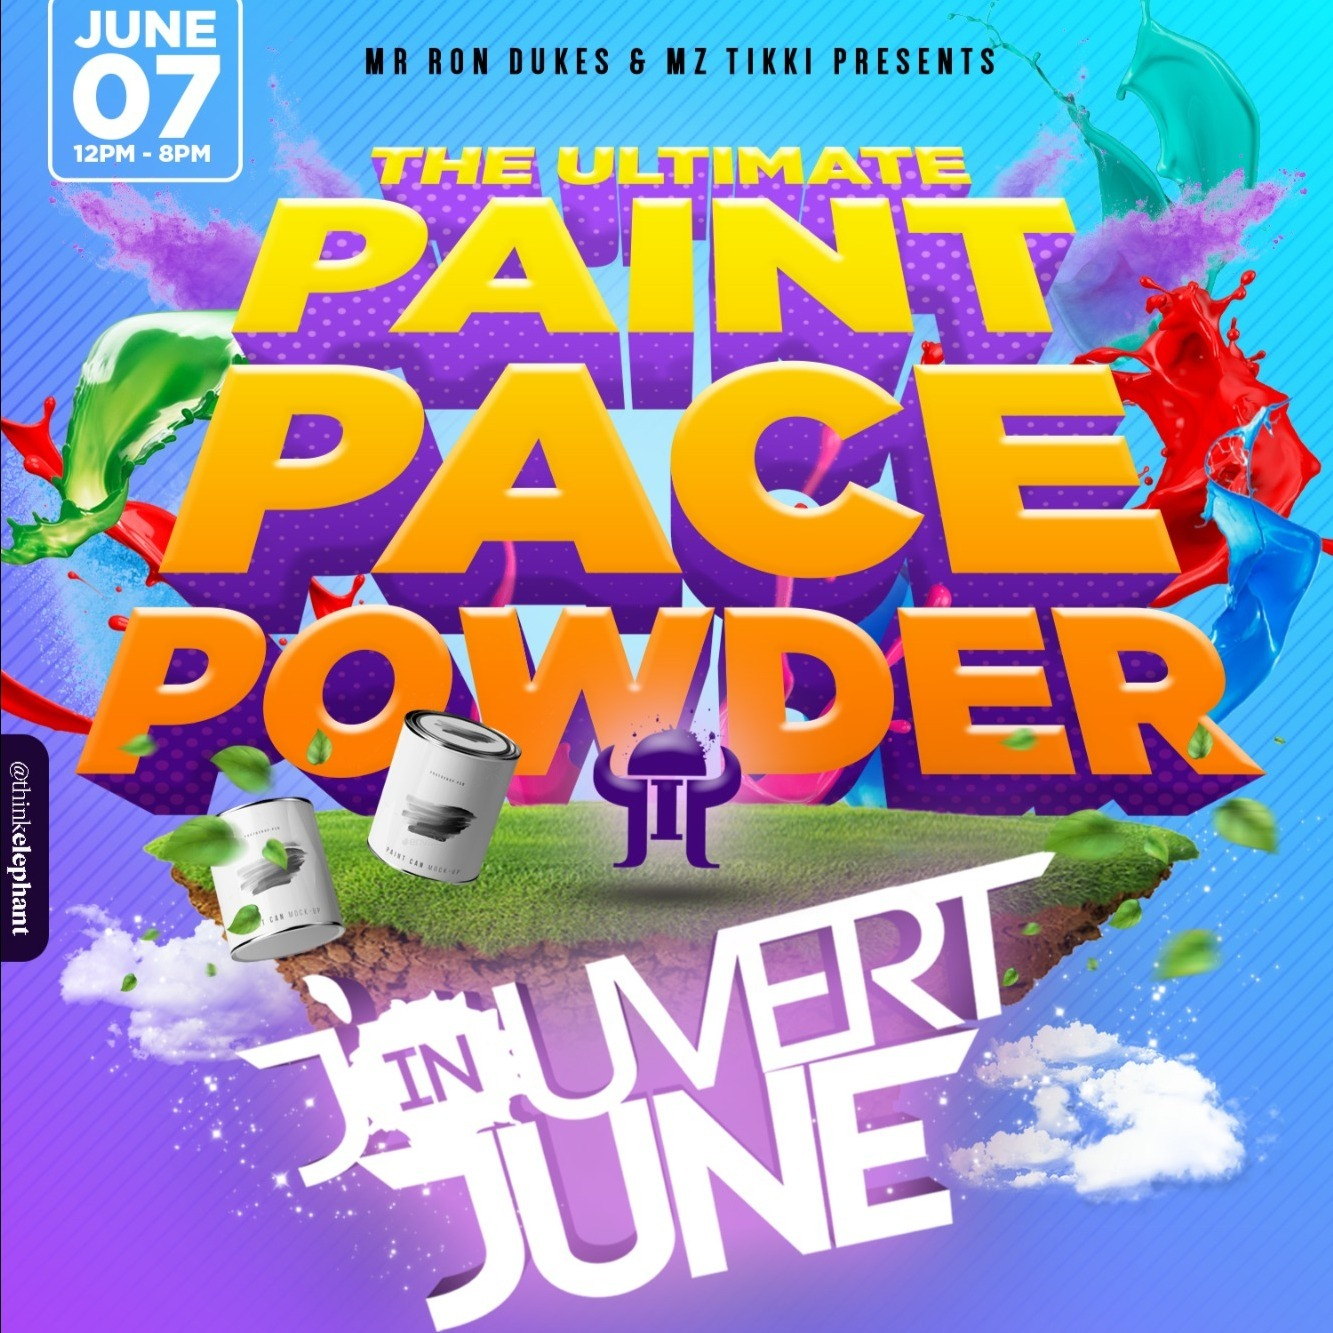 Jouvert In June 2020